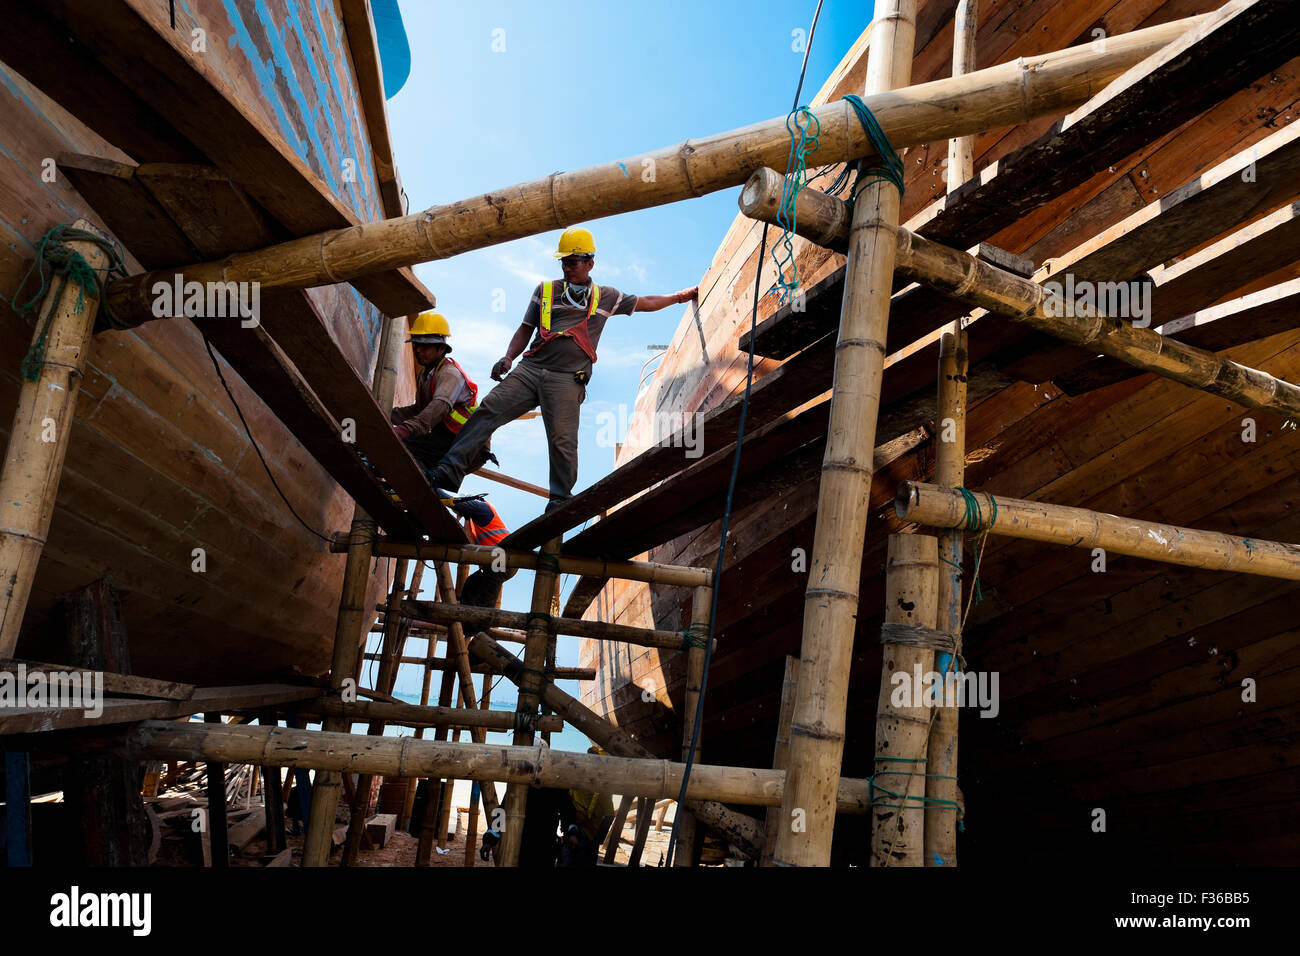 Ecuadorian shipbuilding workers provide maintenance to the traditional wooden fishing vessels in a shipyard in Manta, - Stock Image